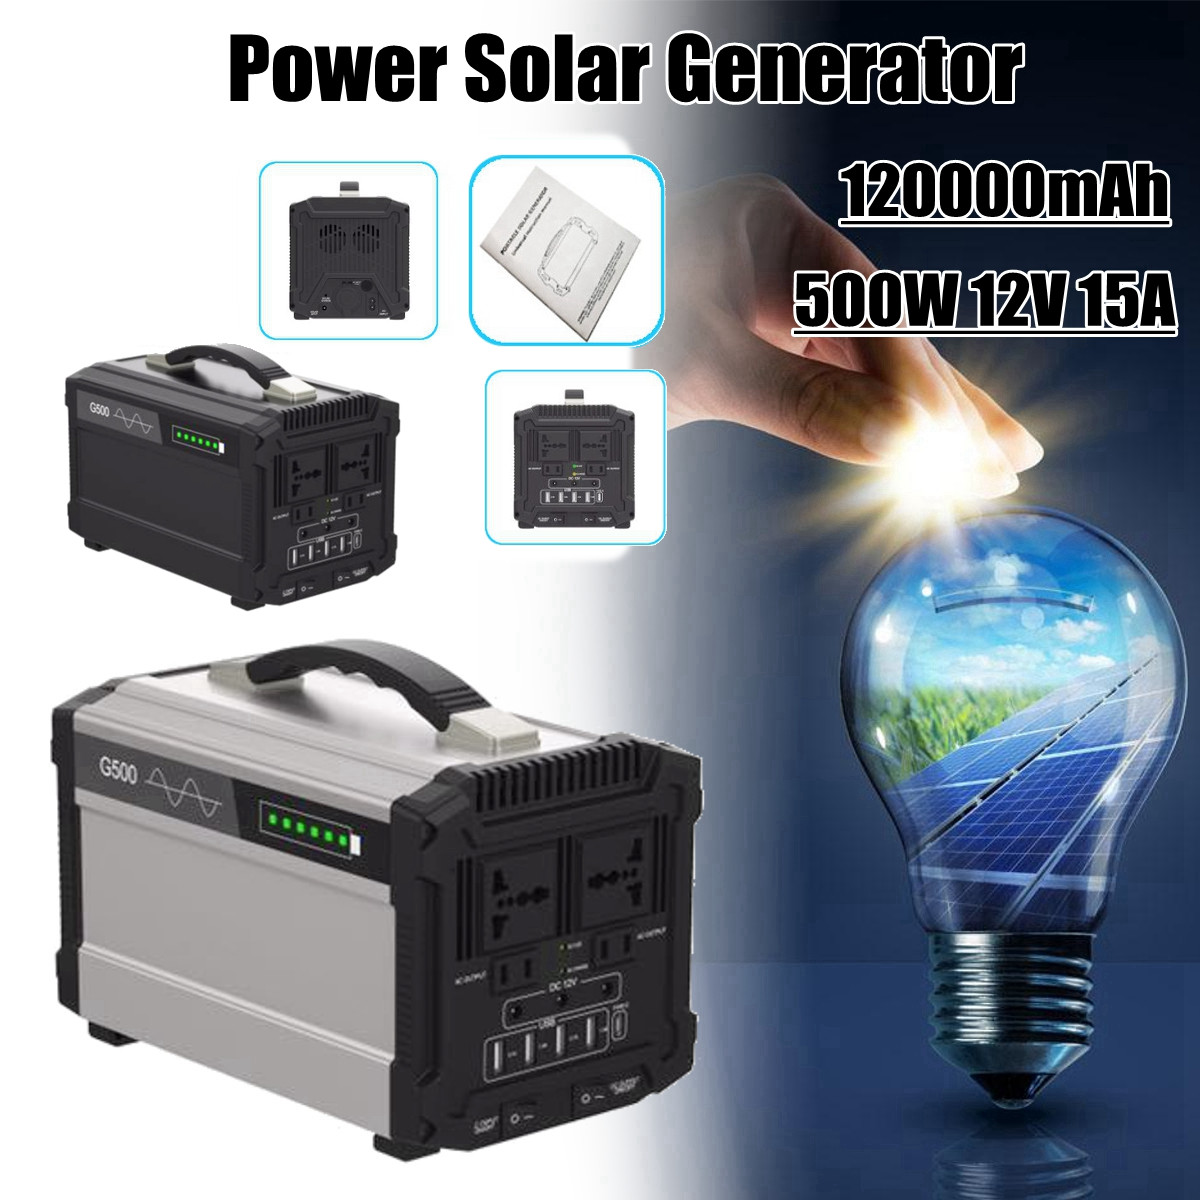 444Wh 120000mAh 500W 12V 15A Energy Storage Home Outdoor Portable Power Solar Generator Faster Charger